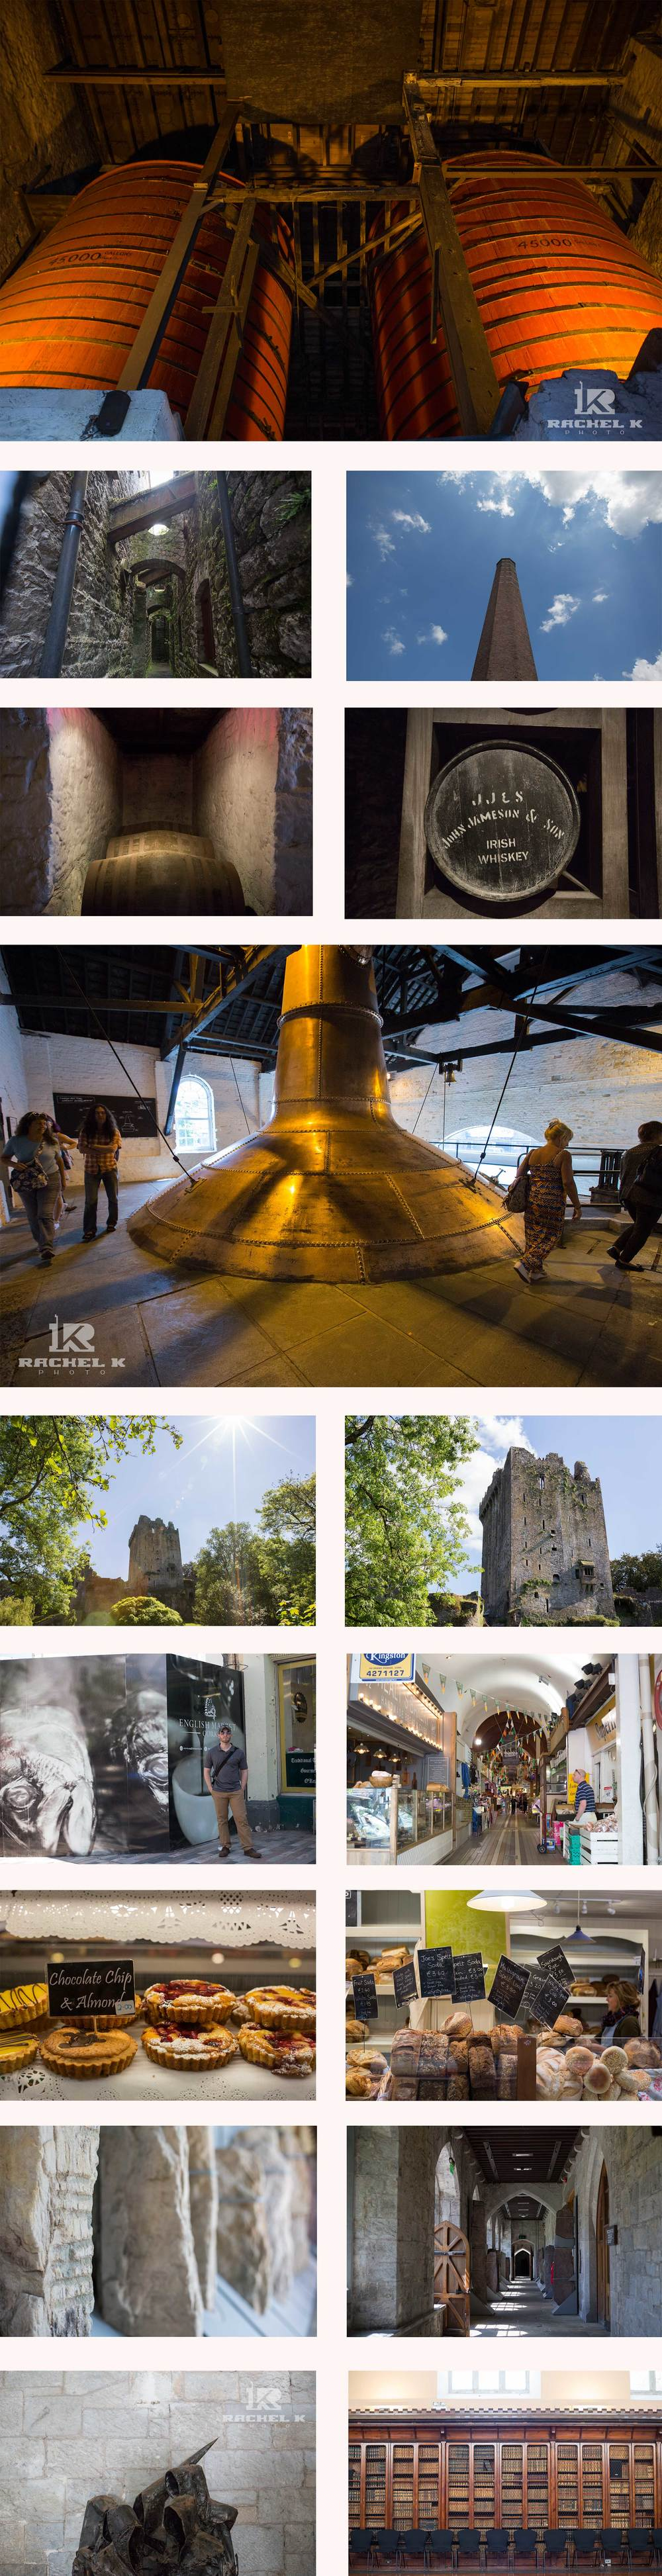 Middleton, Blarney Castle and Cork Ireland by Rachel K Photo